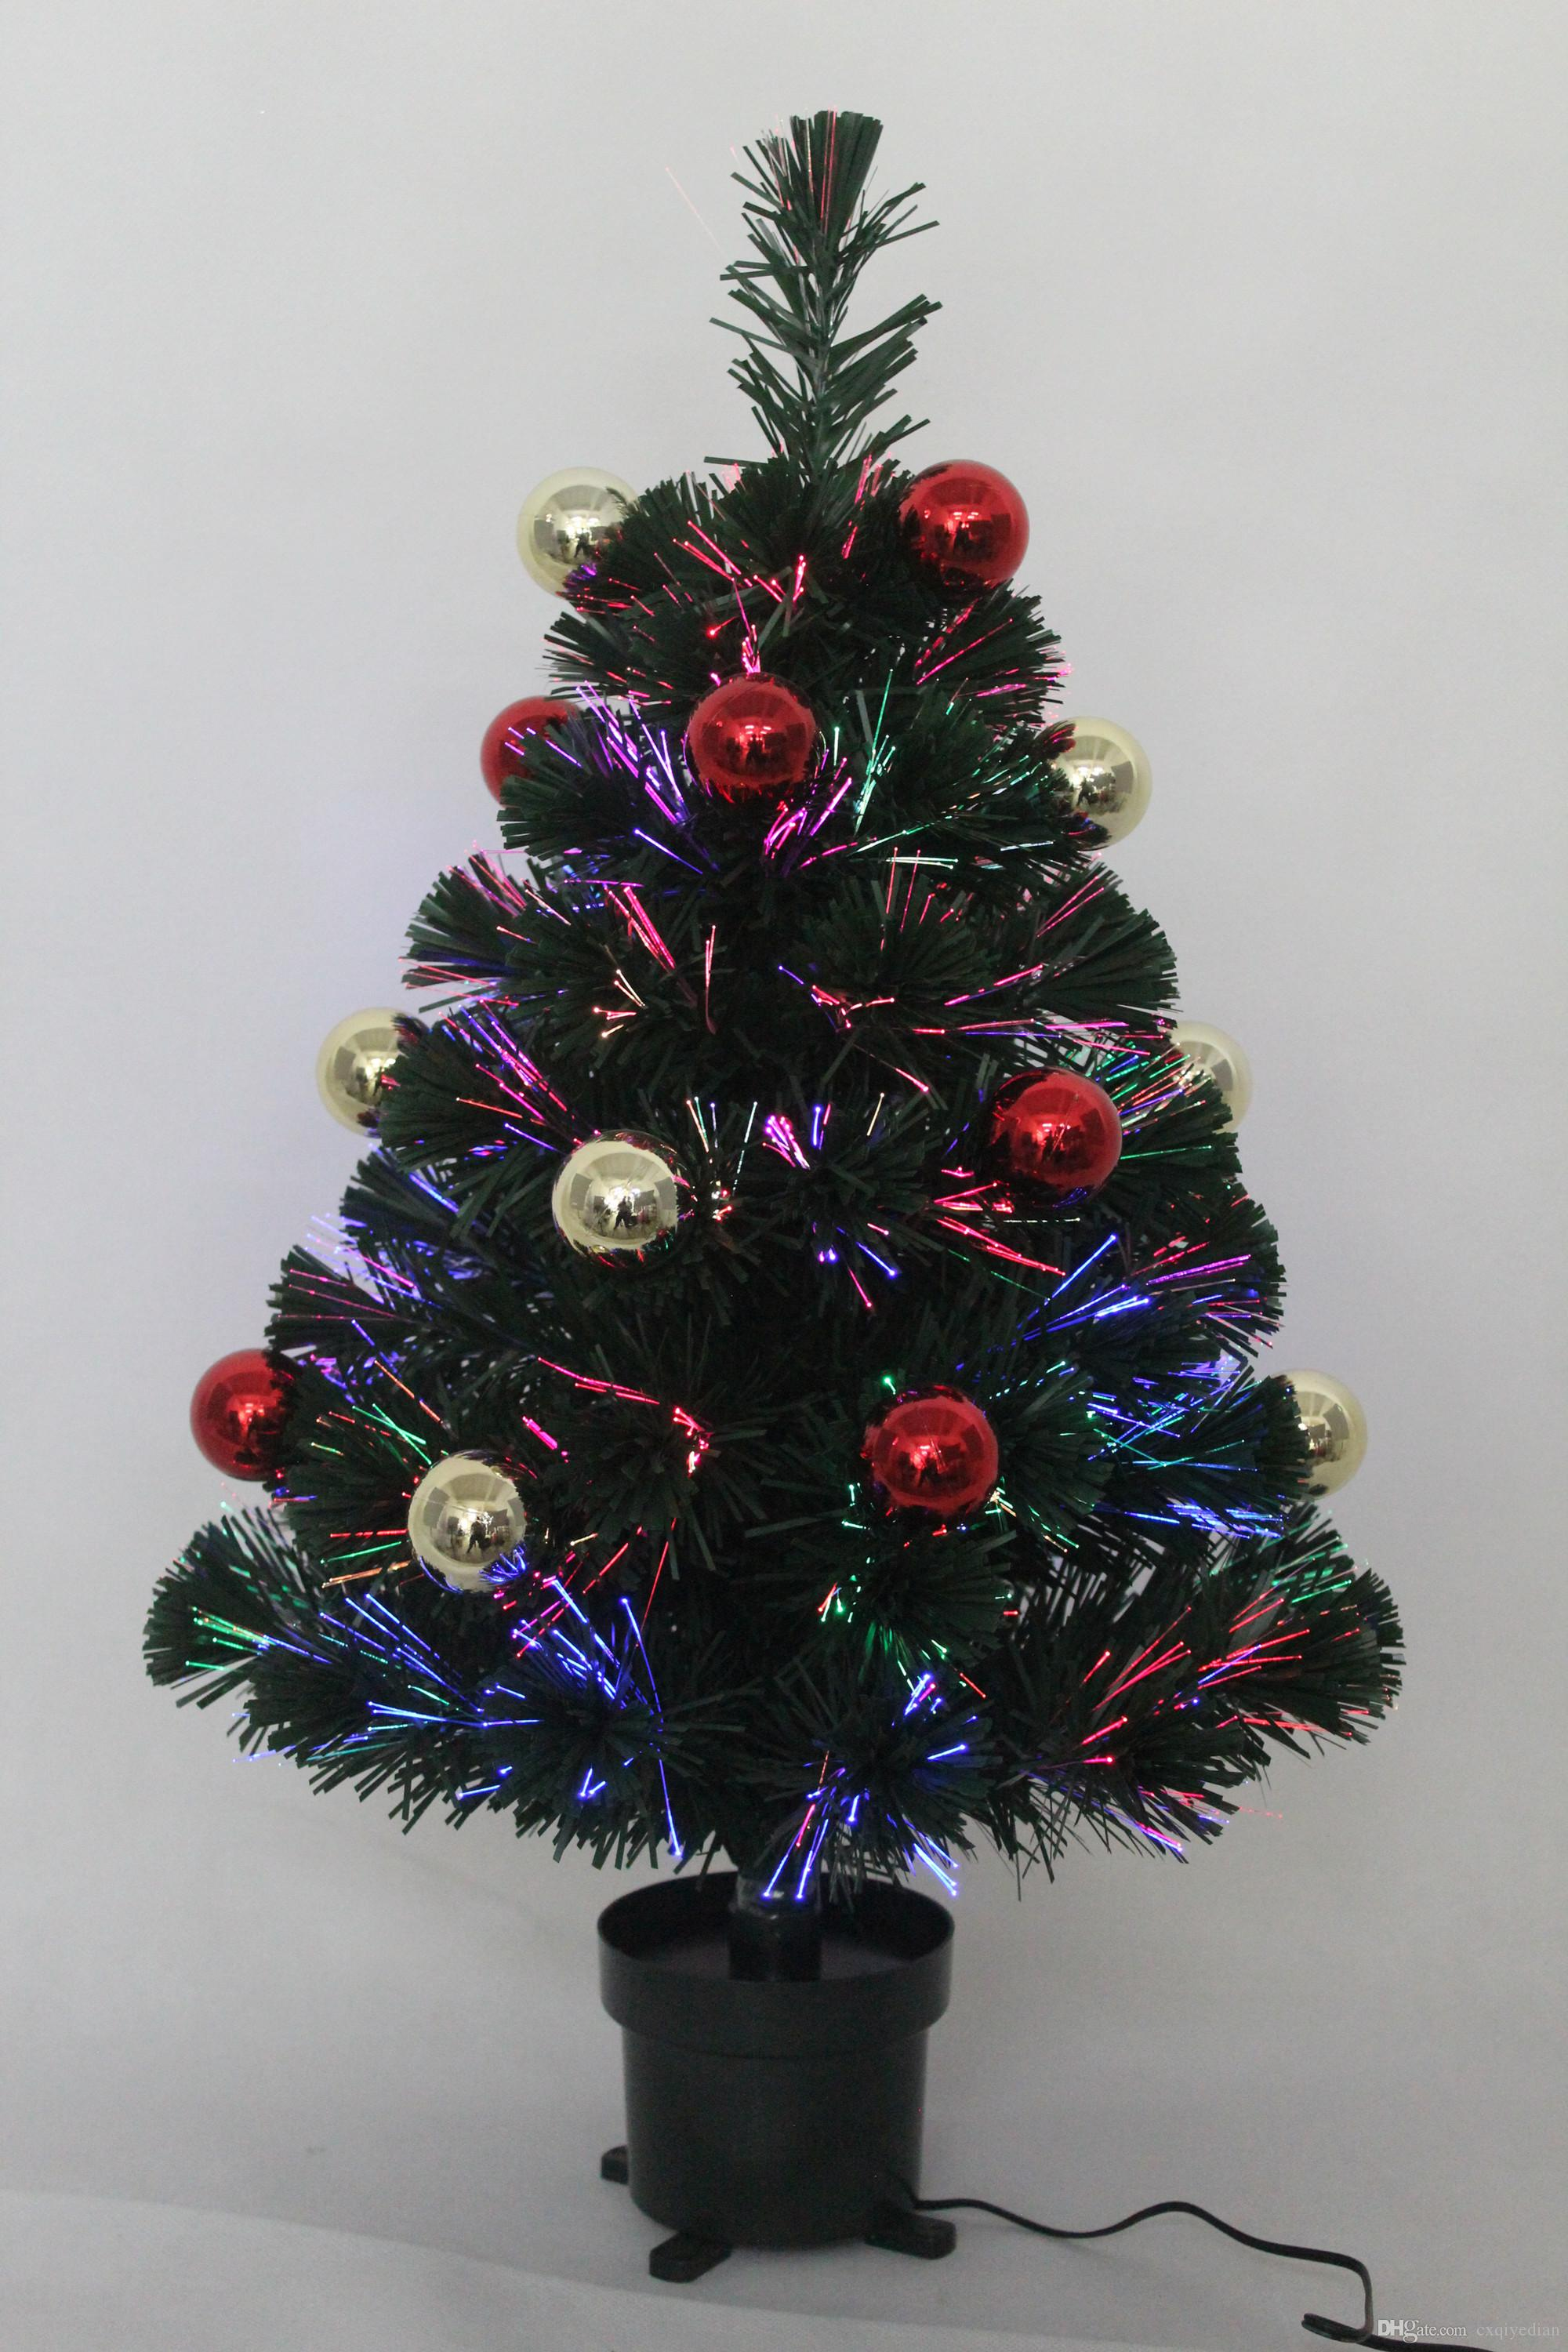 2ft mini green fibre optic artificial decorative shiny baubles christmas tree indoor use 3 x aa battery or usb operated newest christmas decorations old - Mini Fiber Optic Christmas Tree